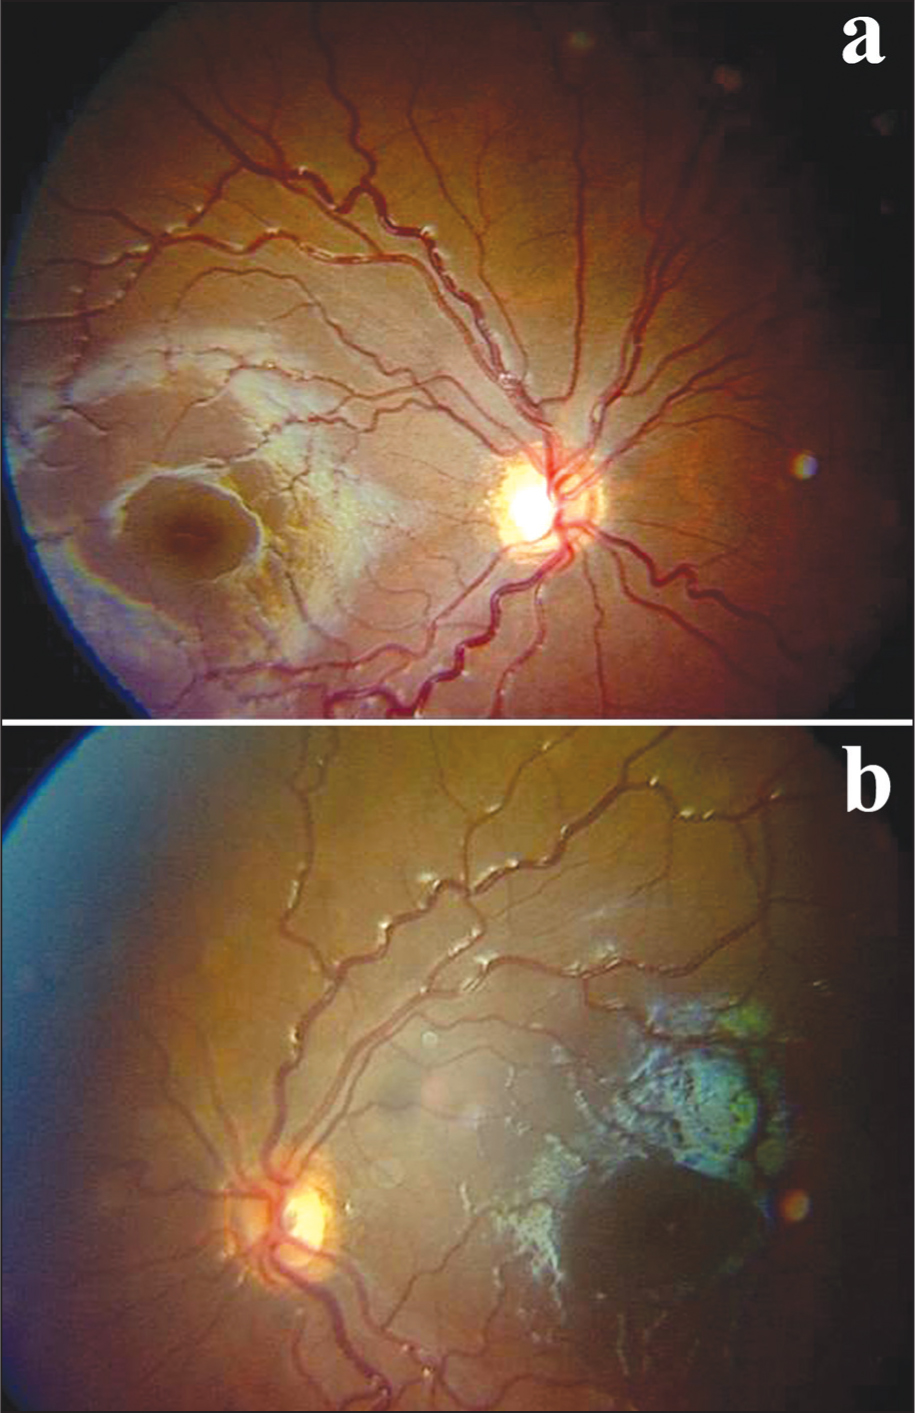 Fundus Photograph of the Right Eye (A) and the Left Eye (B) Showing Small Discs with Circumpapillary Halo (double Ring Sign). Also Note the Ratio of Disc to Macula/disc Diameter in Both Eyes Is More than 4.5.